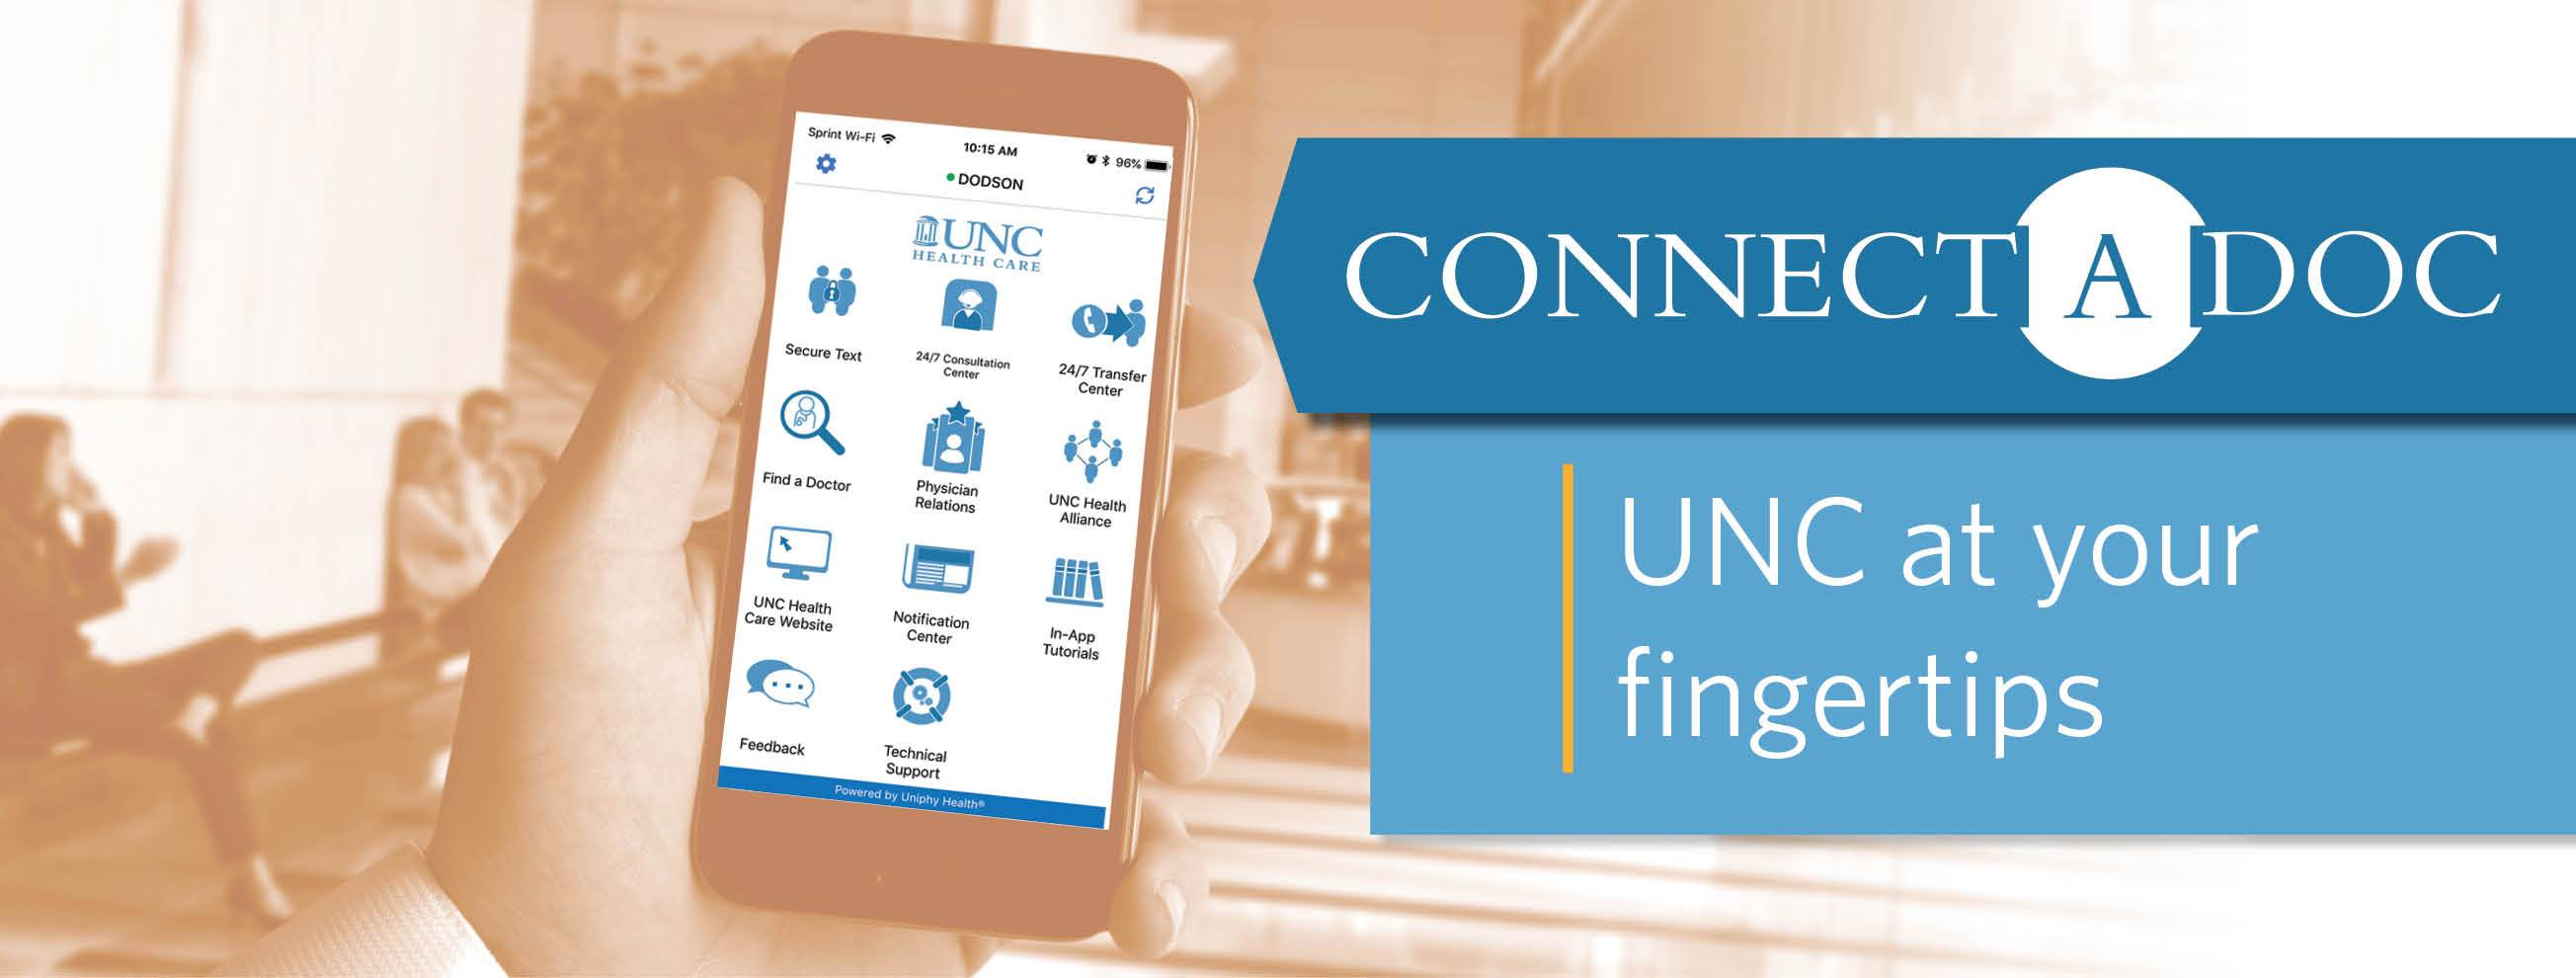 UNC at your fingertips